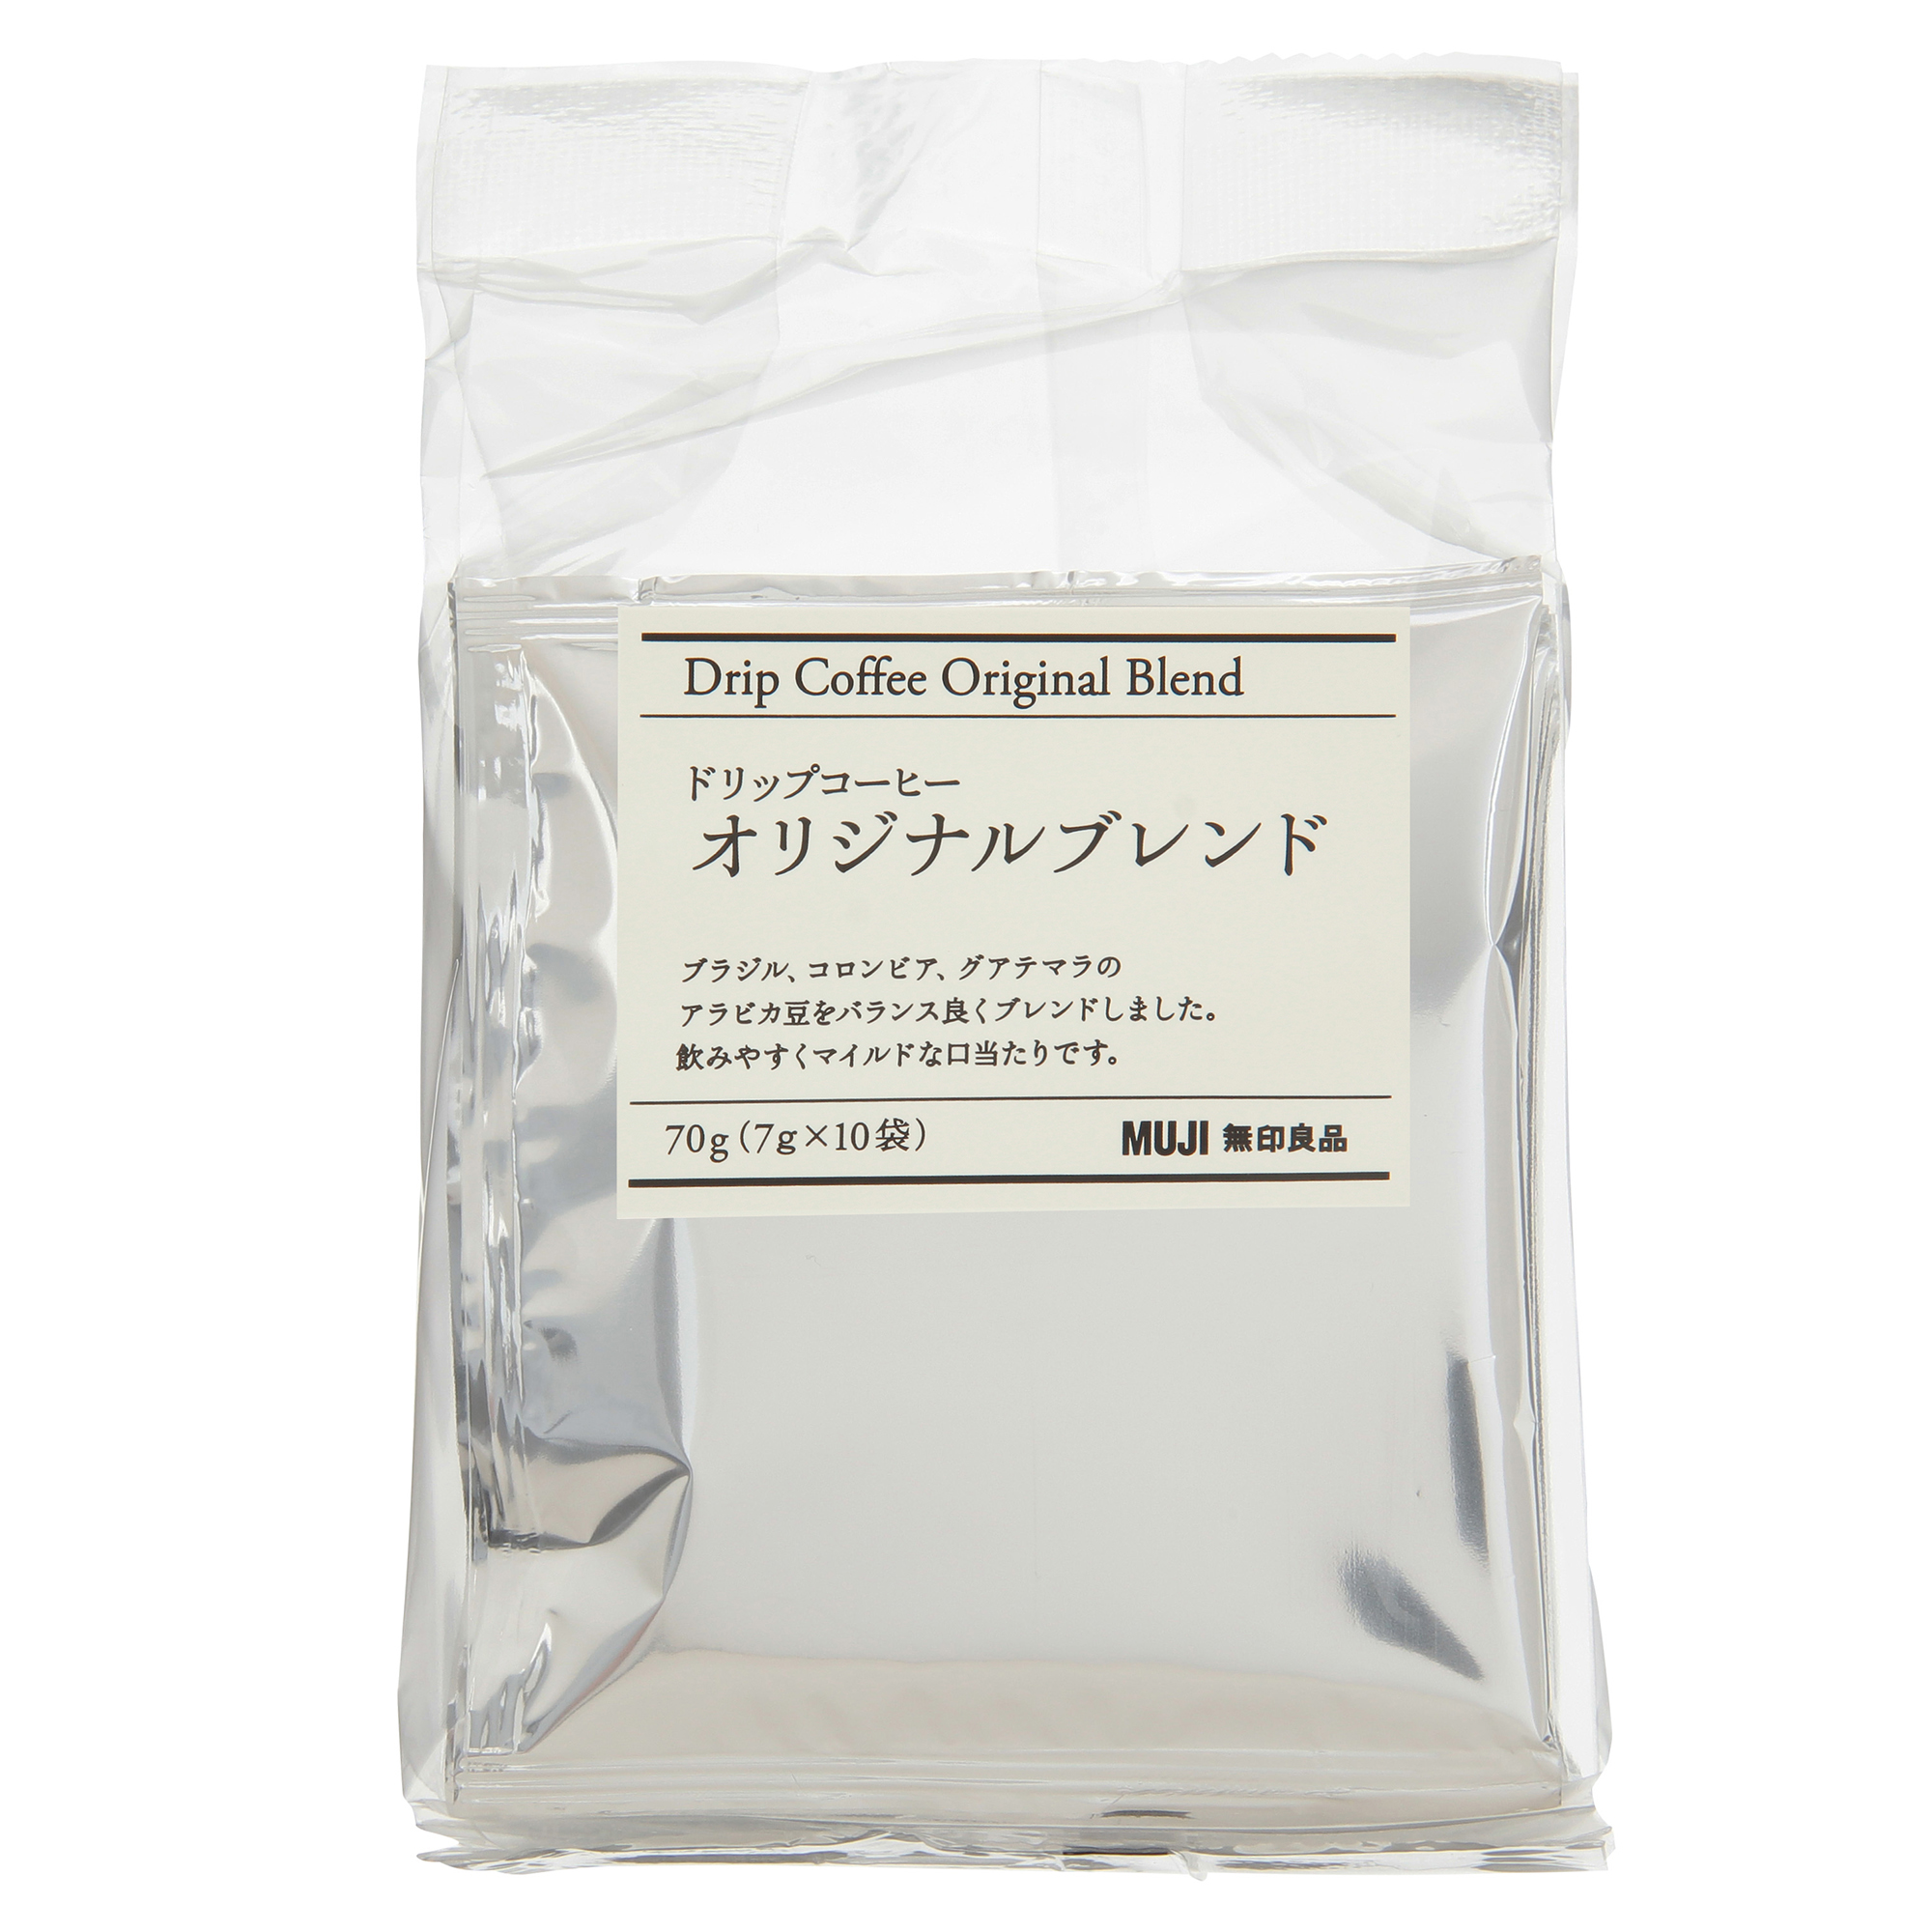 MUJI Drip Coffee Original Blend